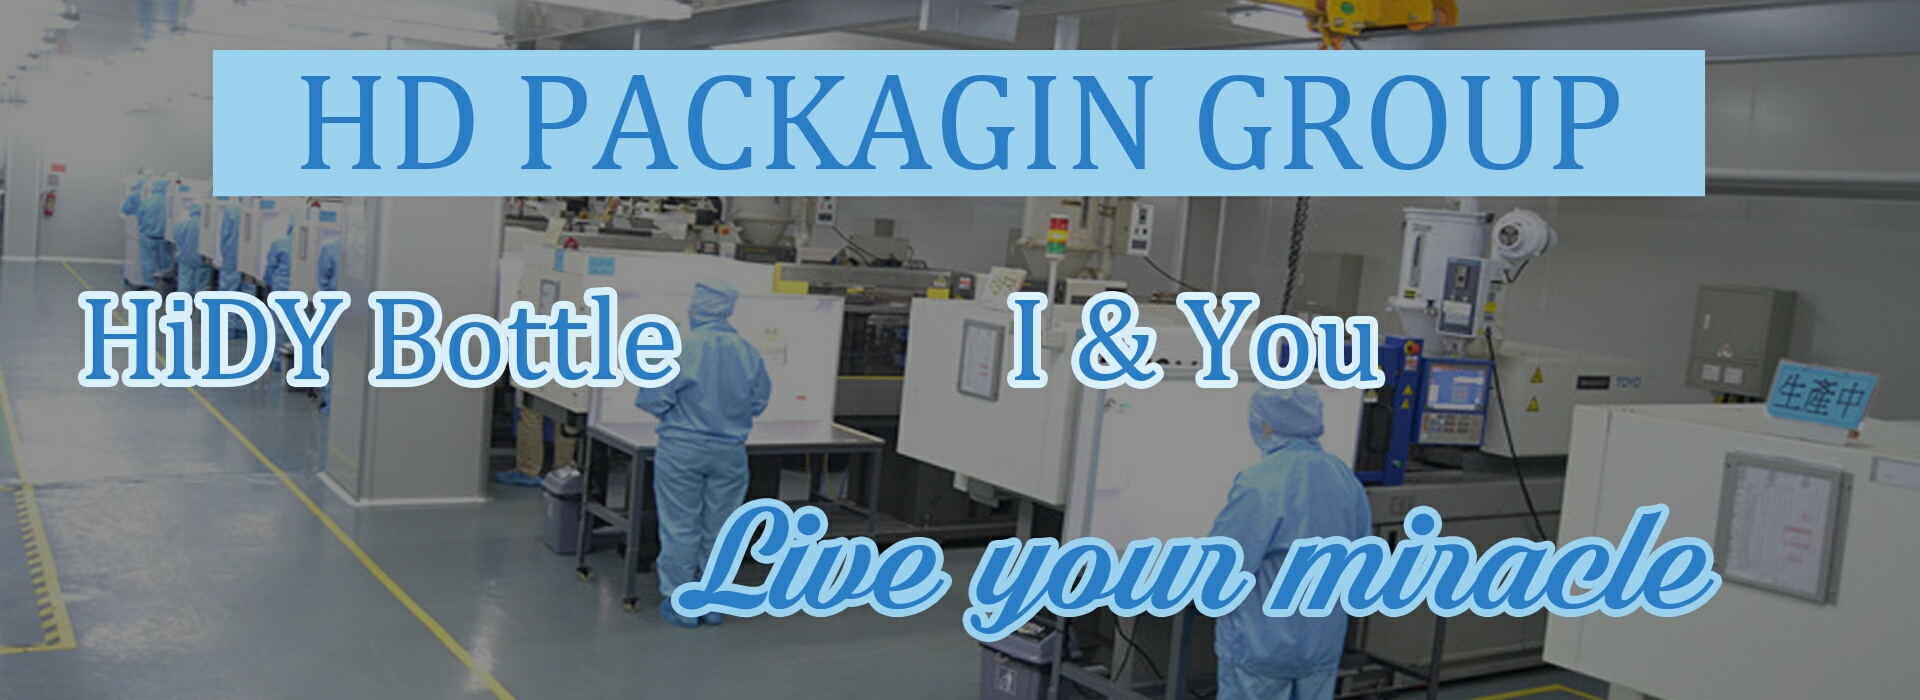 hdpackaginggroup-banner